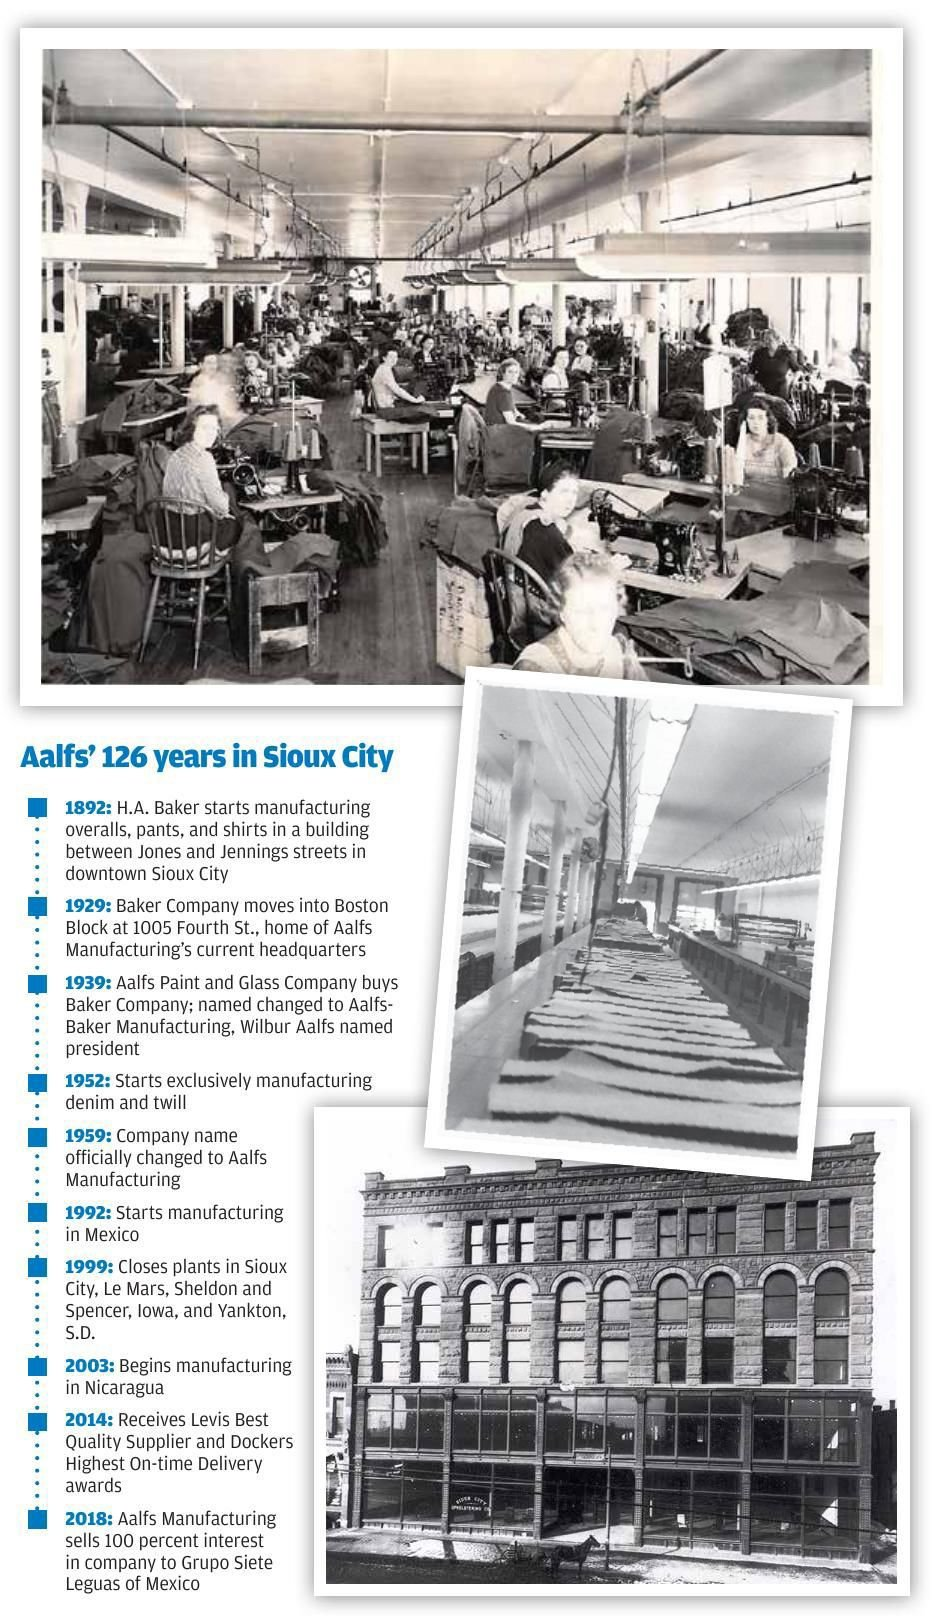 Aalfs Manufacturing timeline